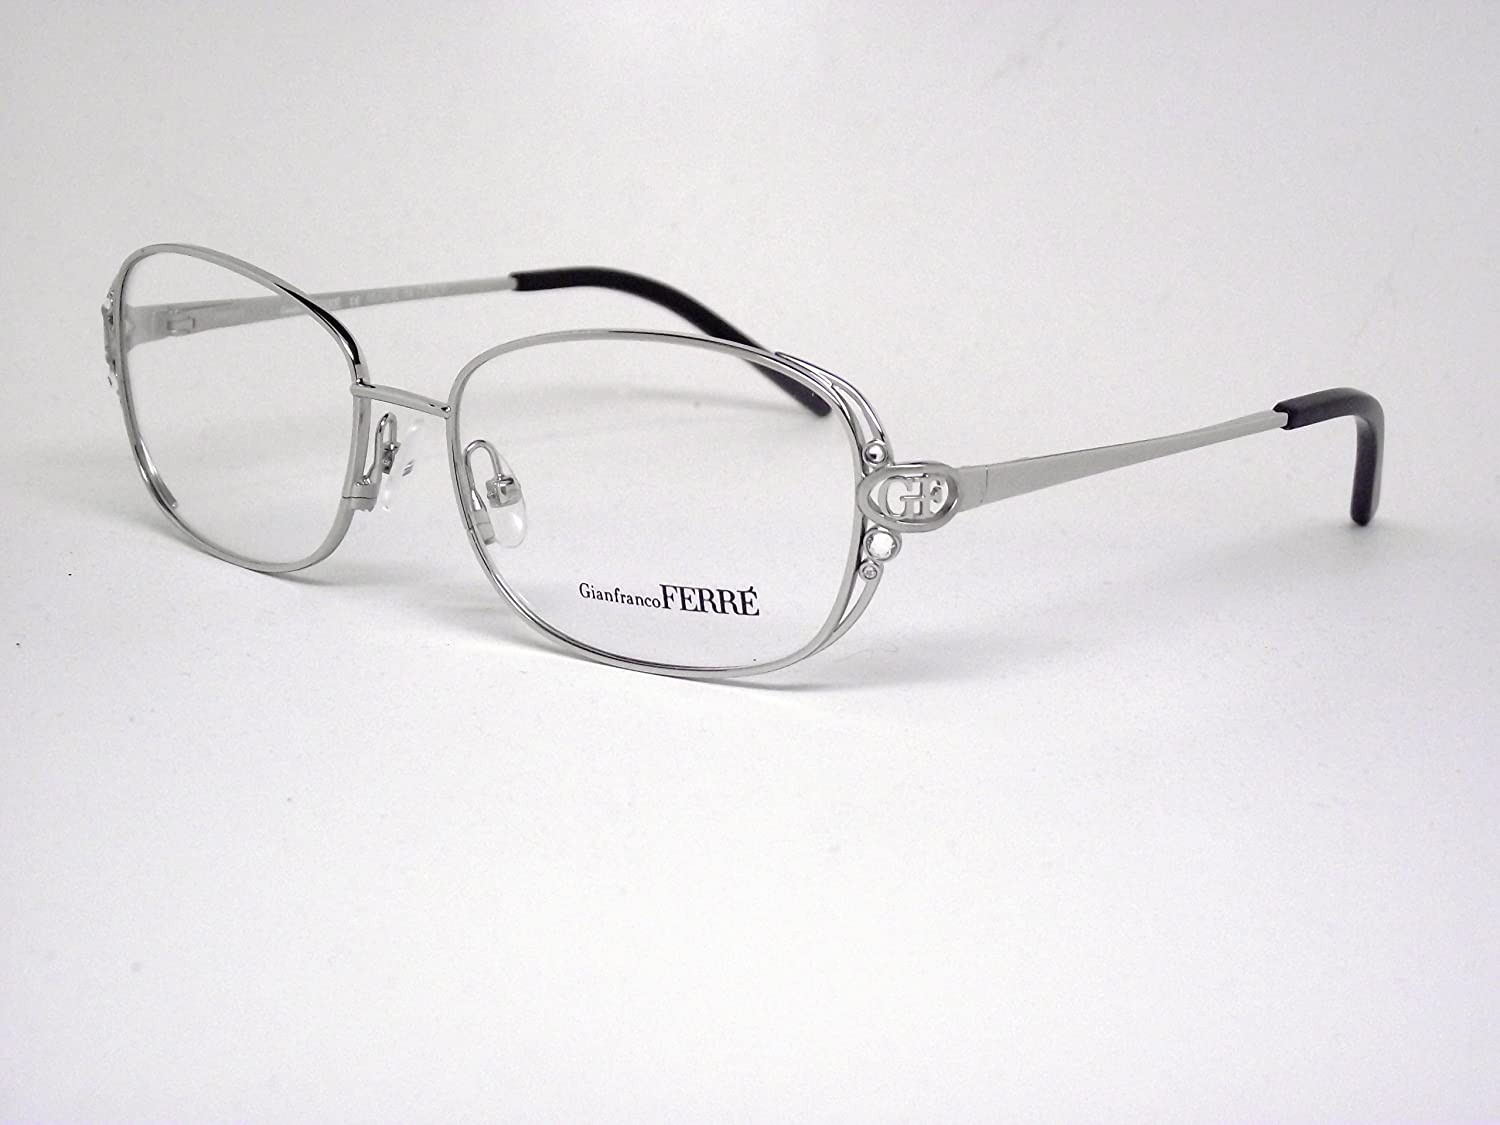 GIANFRANCO FERRE GF37601 EYEGLASSES OPTICS PRESCRIPTION at Sears.com